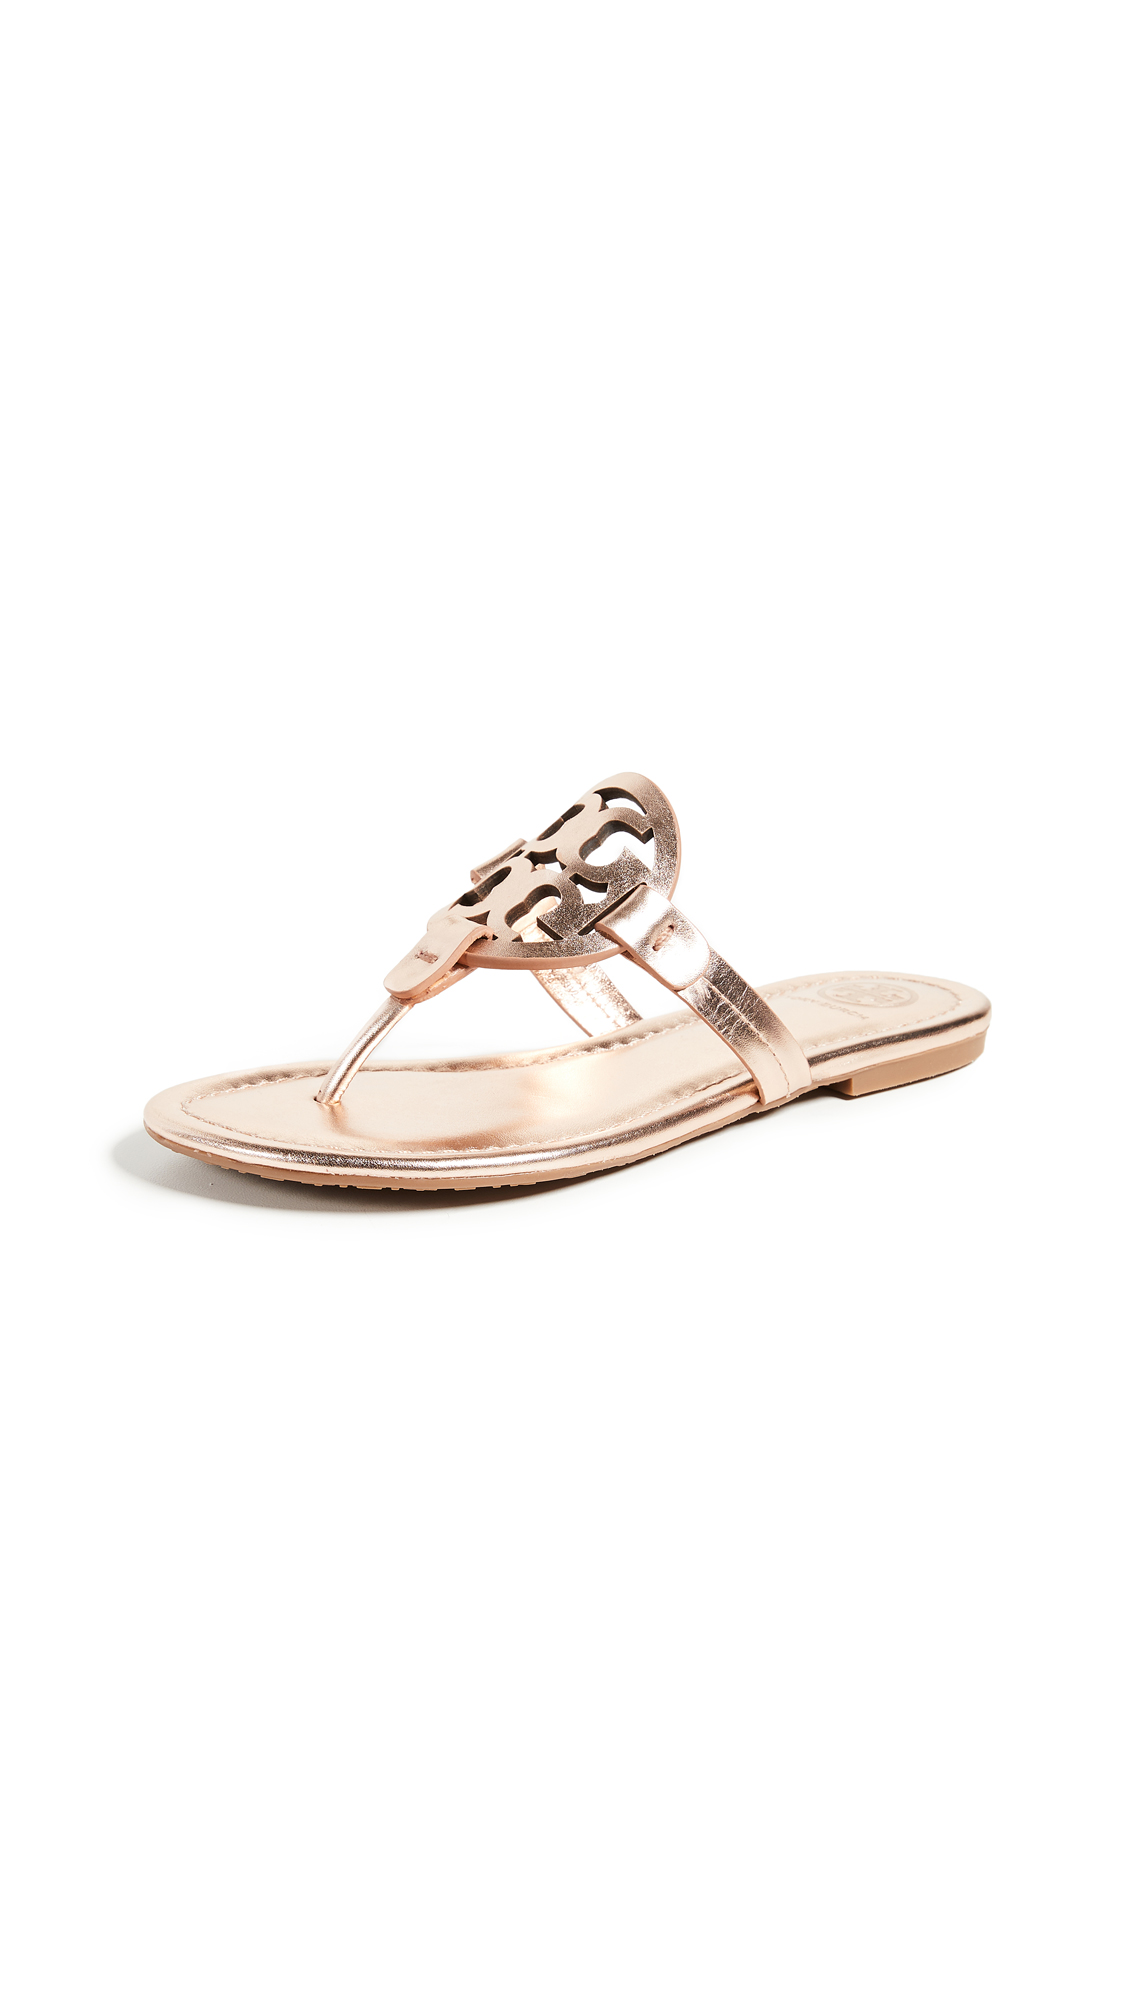 Tory Burch Miller Thong Sandals - Rose Gold